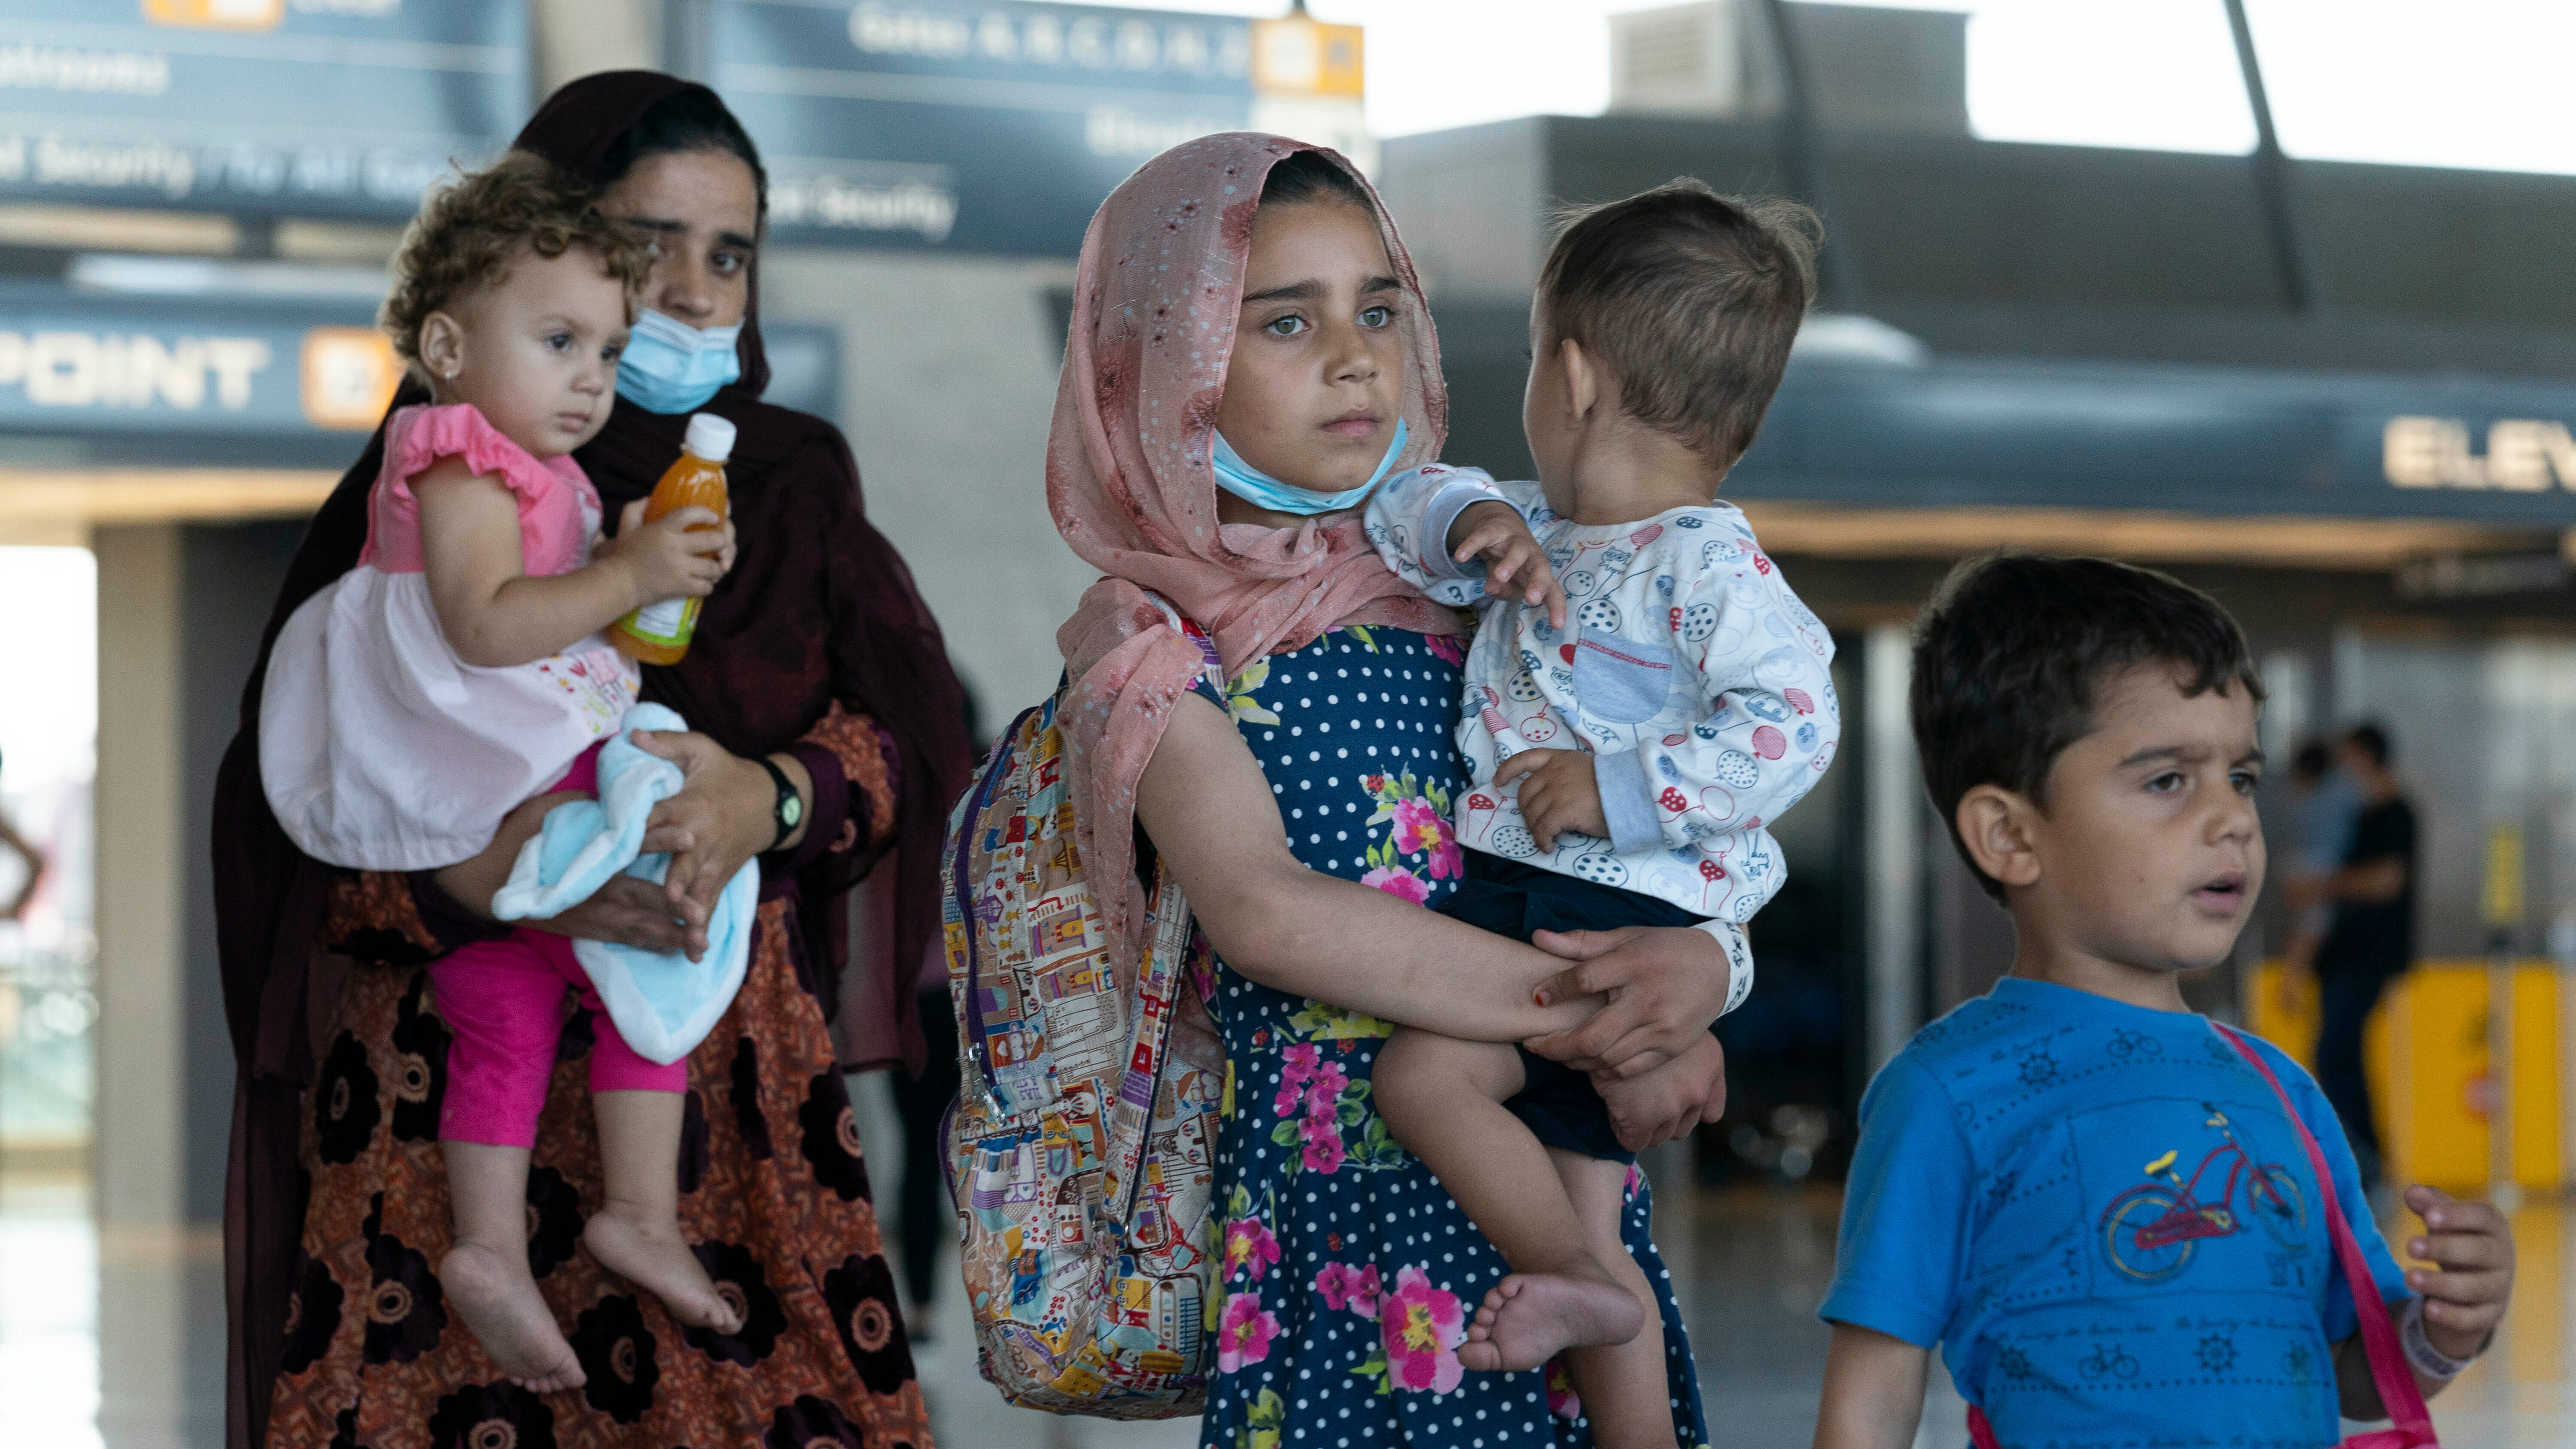 Afghanistan refugees coming to Asheville; NC to receive 1,169